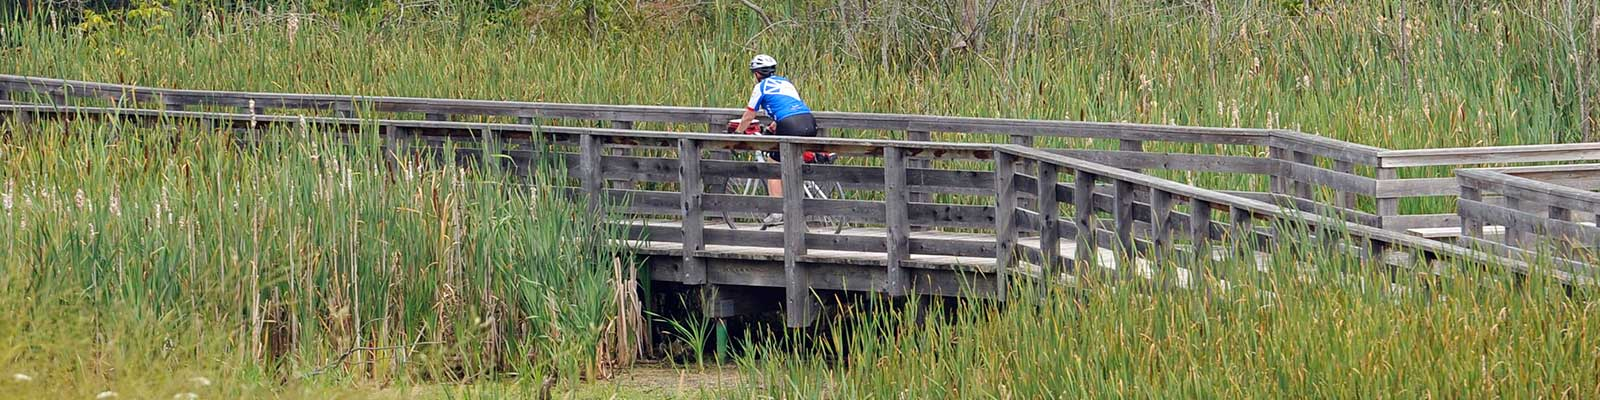 Photo-Cyclist-NokiidaTrail-Wetland-2015-08-18-Great-Waterfront-Trail-Adventure-2015-Greenbelt-Route-Special-Edition_c_Simon-Wilson-237.jpg